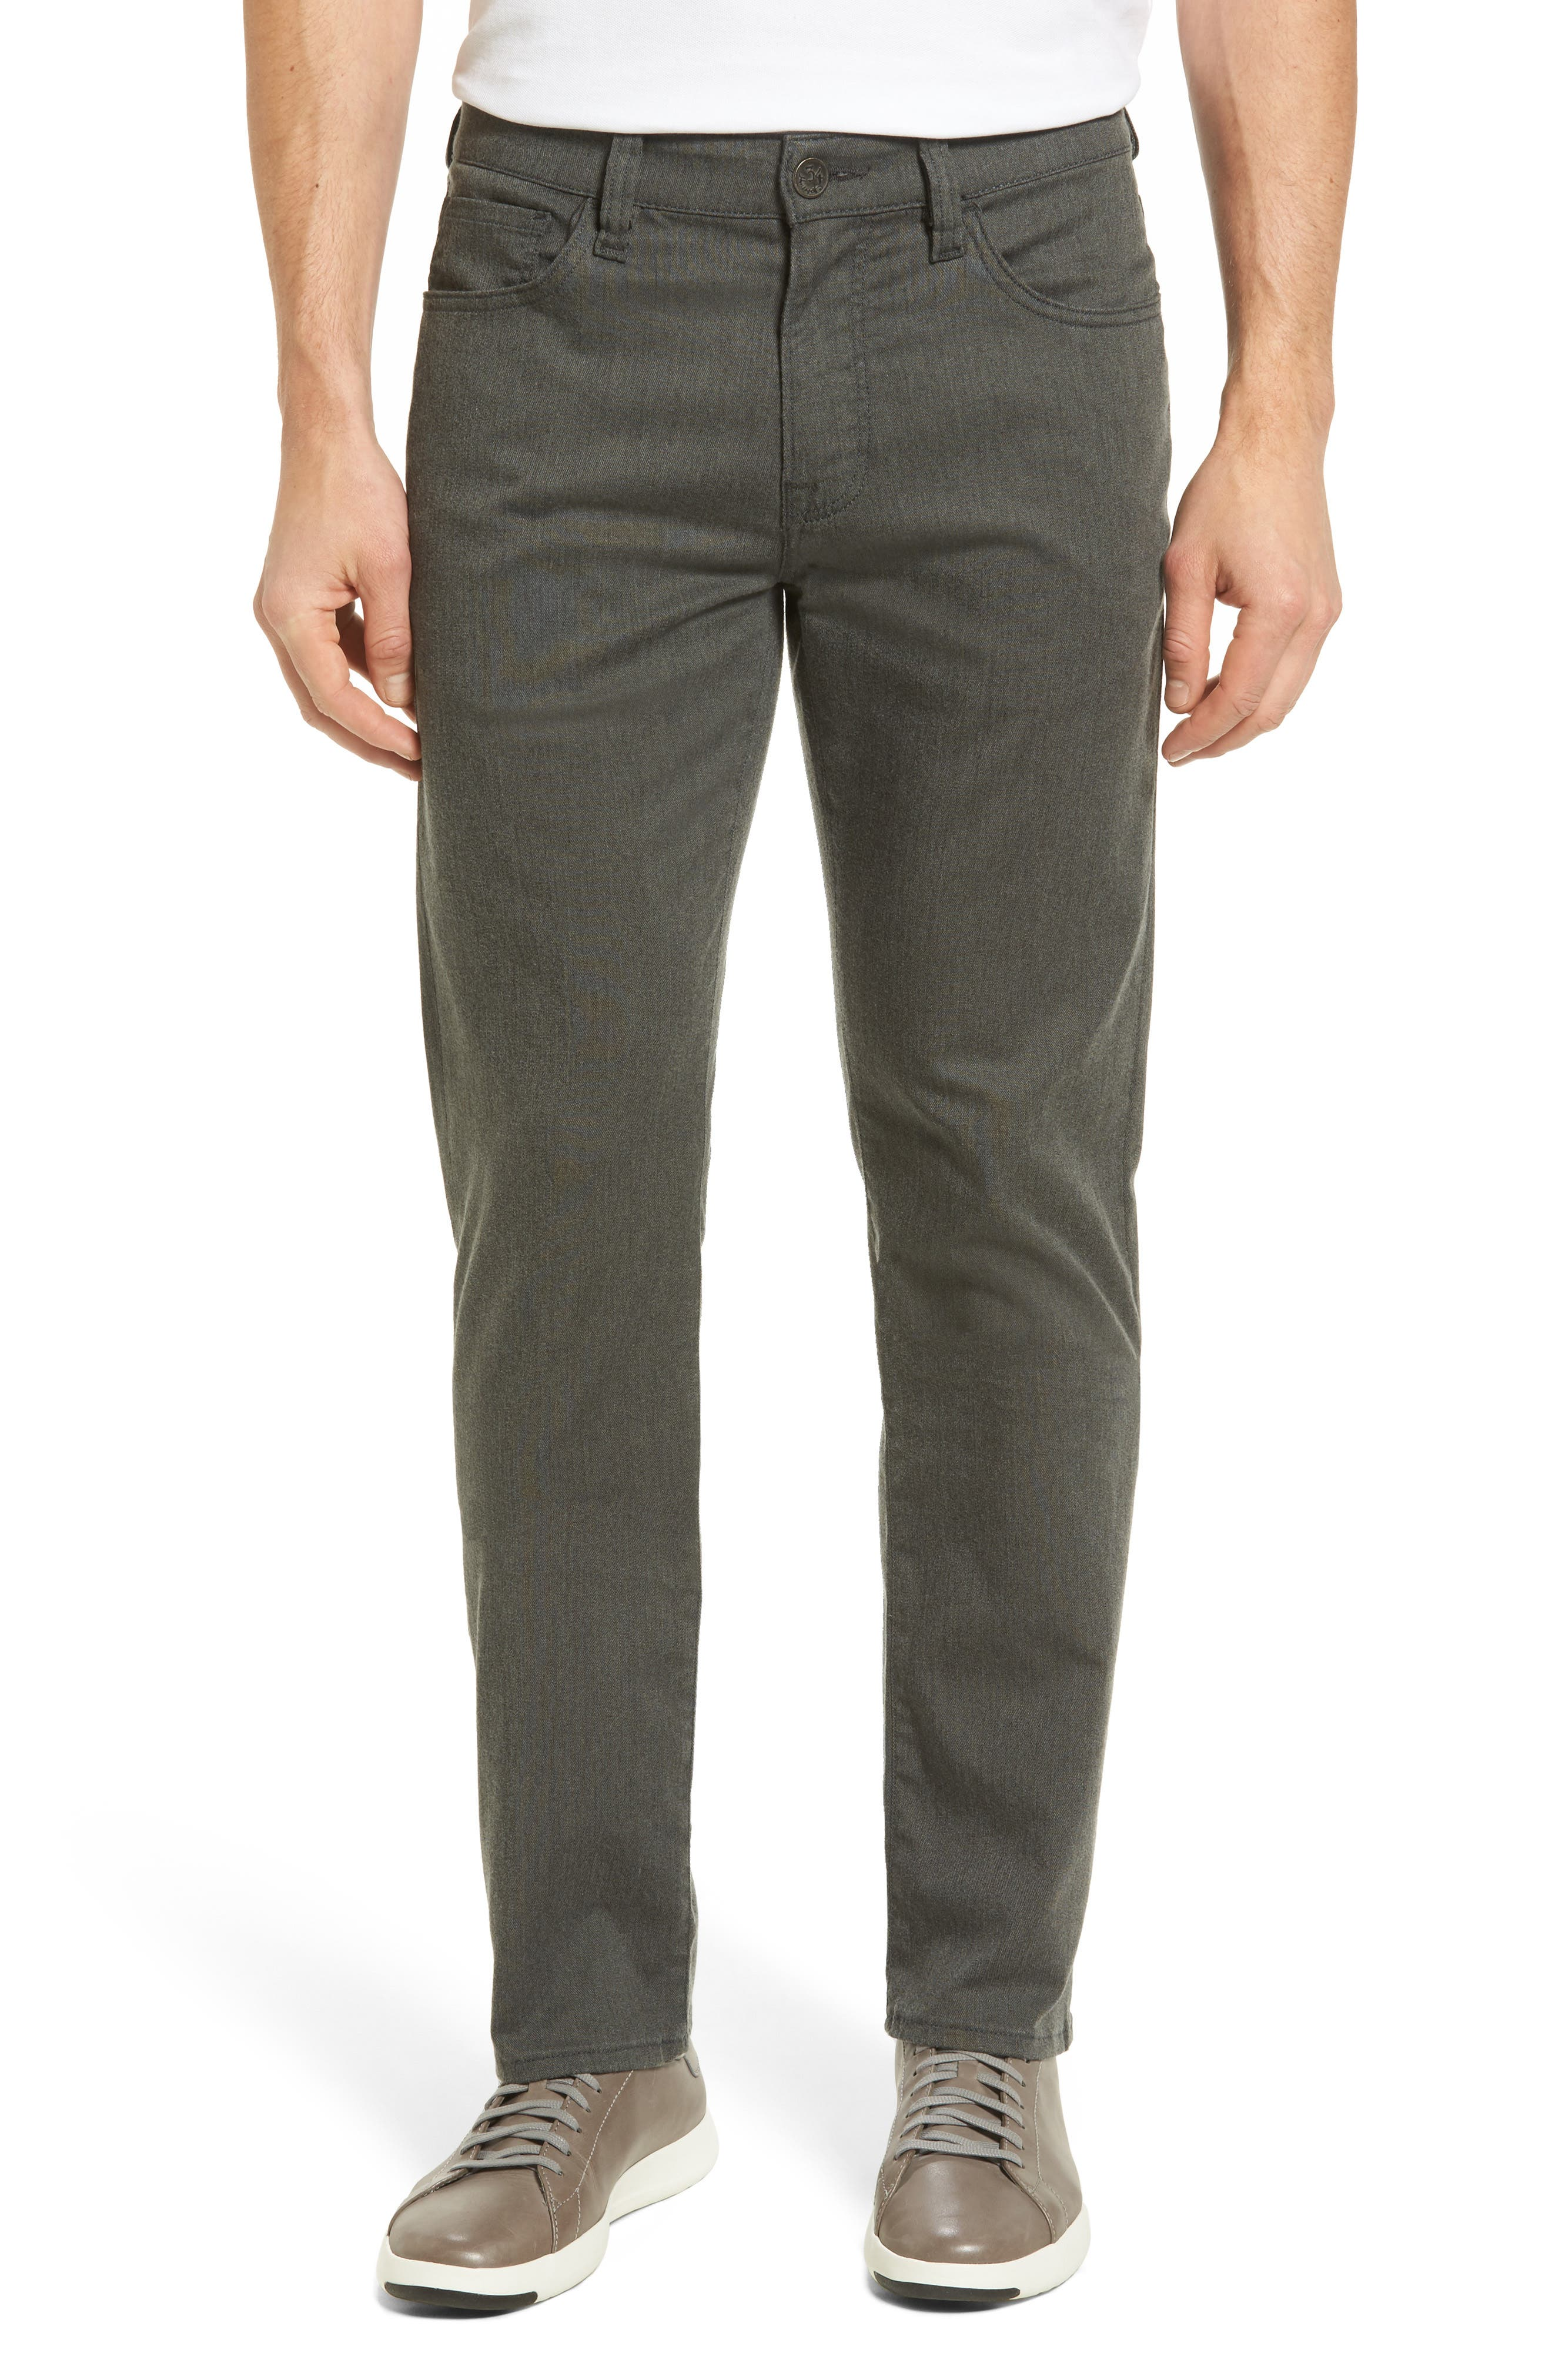 Courage Straight Leg Jeans,                             Main thumbnail 1, color,                             GREY LUXE